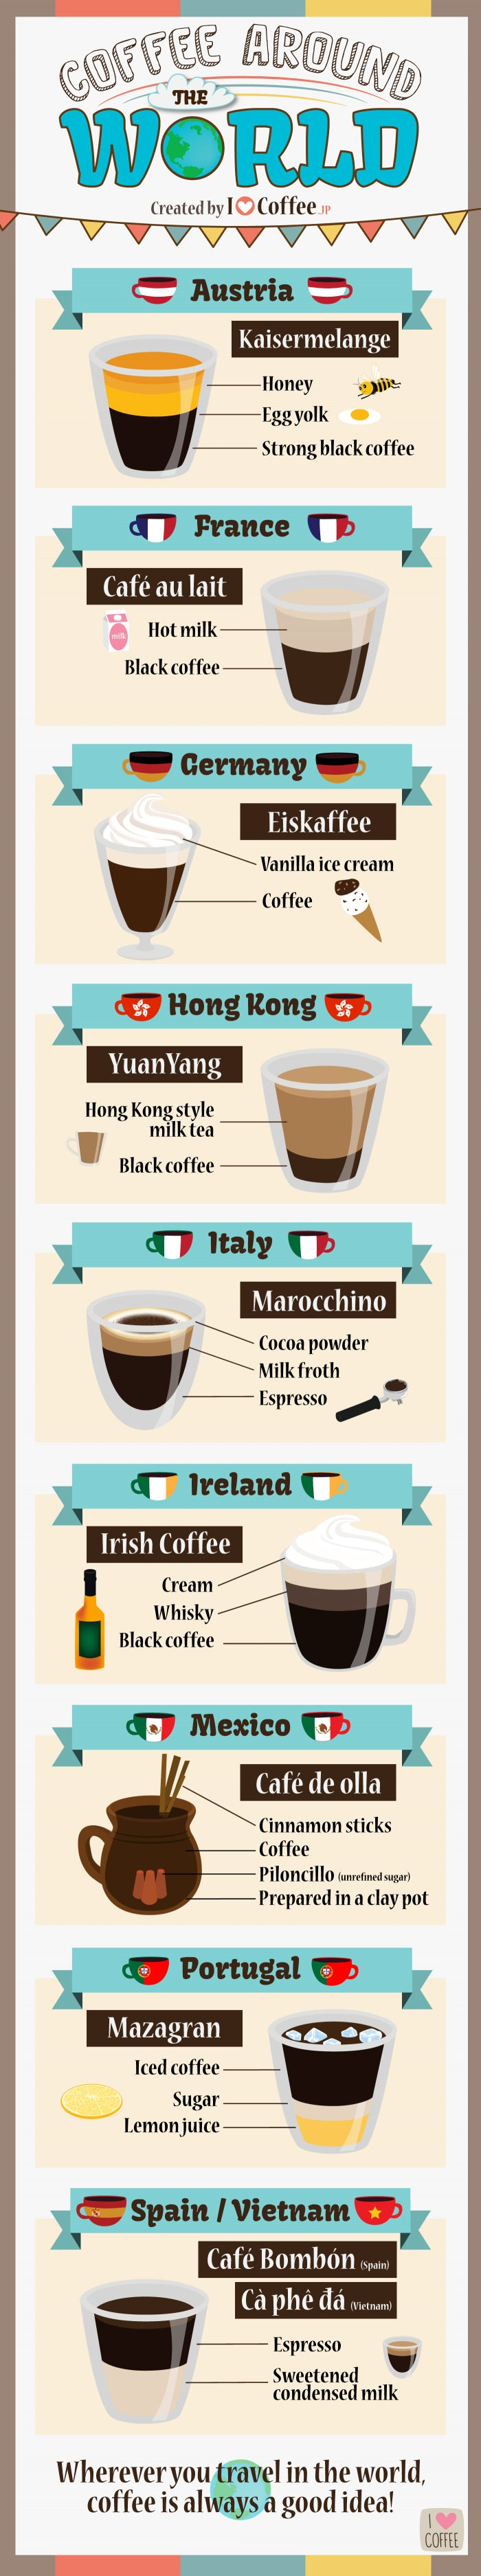 Coffee around the world